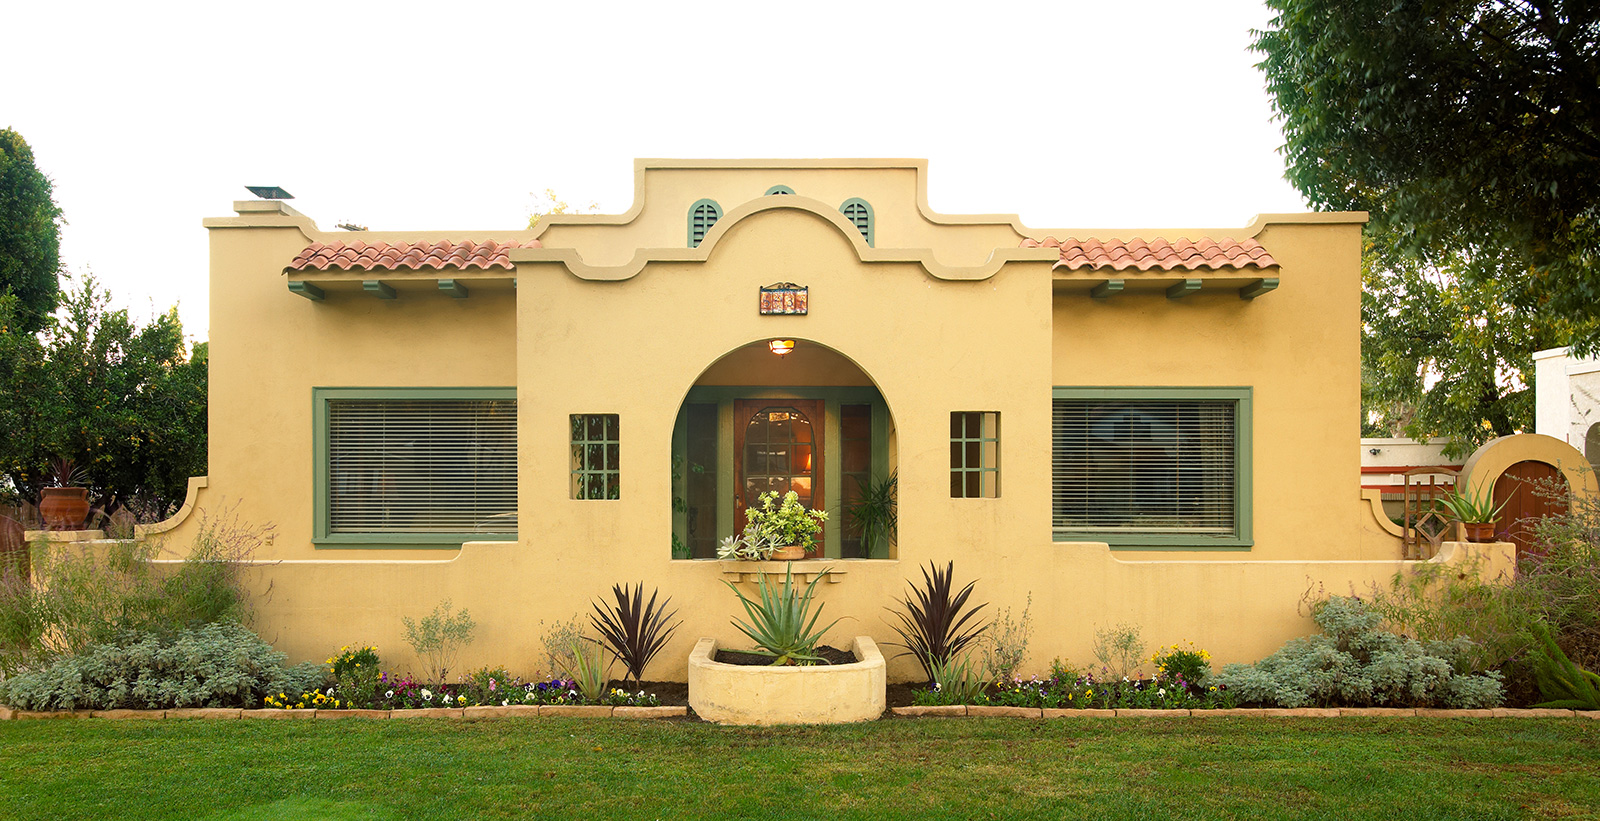 Spanish mediterranean themed house with yellow walls, and green trim.